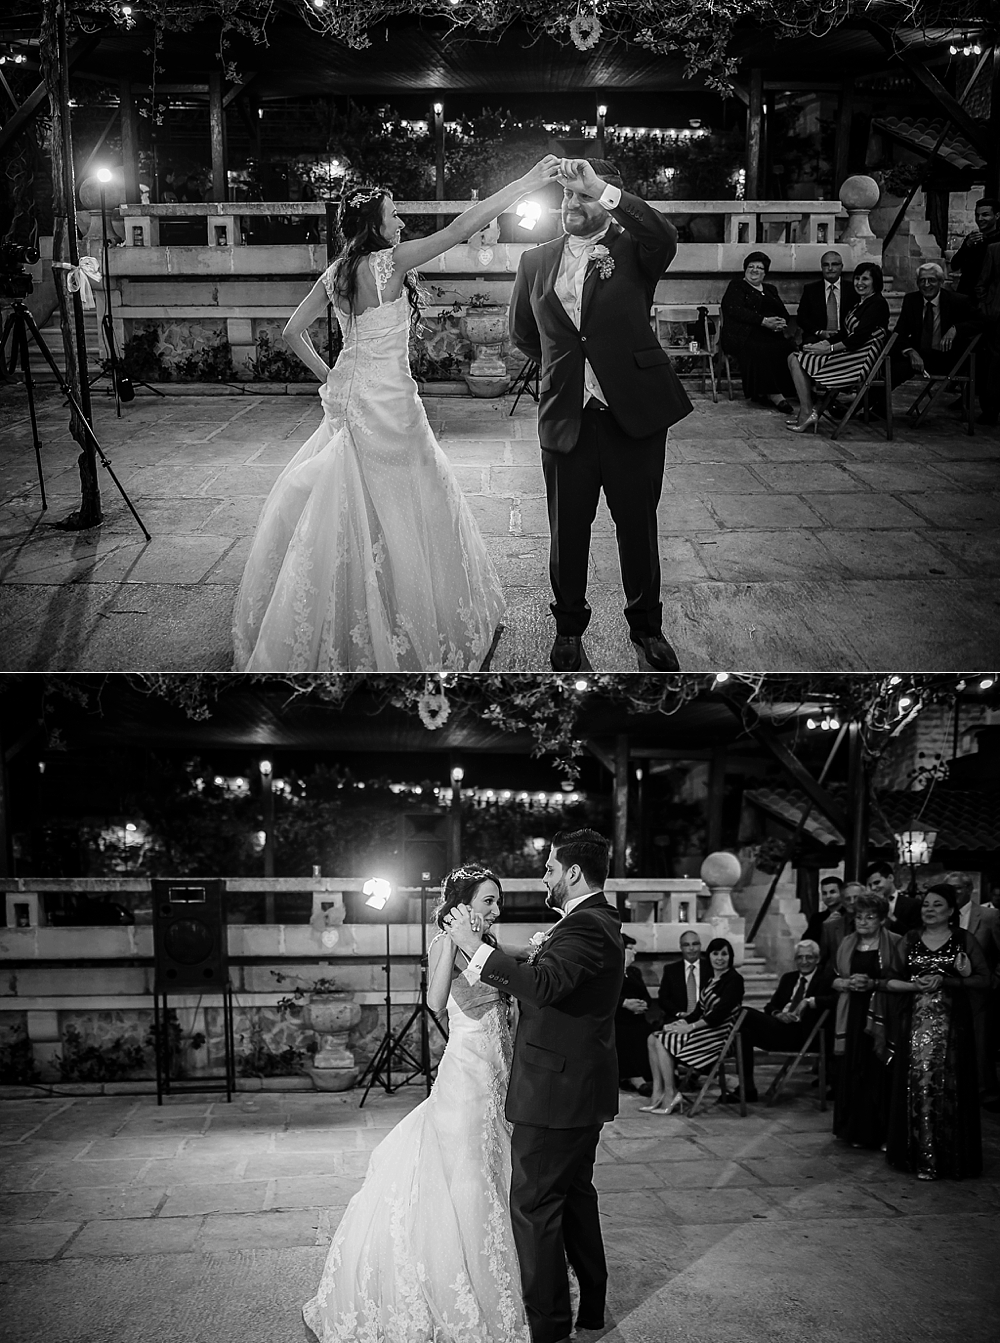 Christina & Thomas - Razzett L-Abjad - Wedding Malta - Shane P. Watts PhotographyChristina & Thomas - Razzett L-Abjad - Wedding Malta - Shane P. Watts Photography